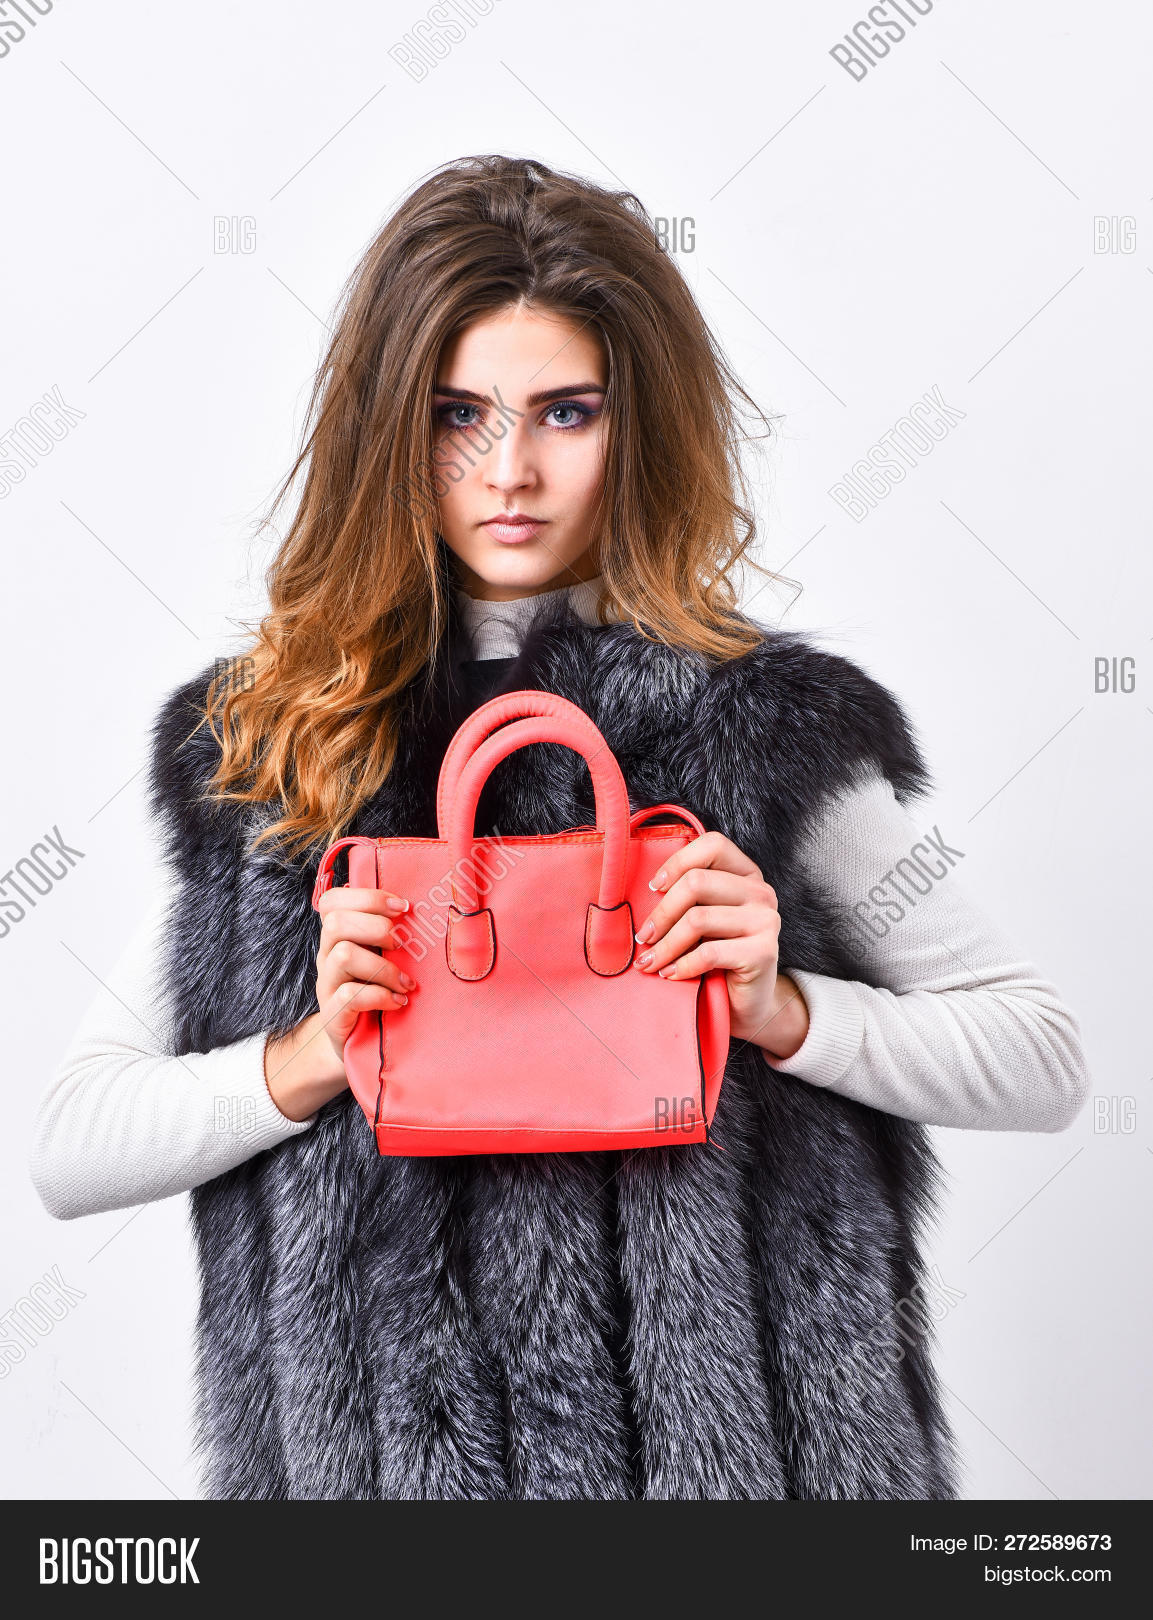 b6c06d23 Fashion and shopping concept. Female stylish fashion model. Woman in fur  coat with handbag on white background. Girl fashion lady stylish hairstyle  wear ...